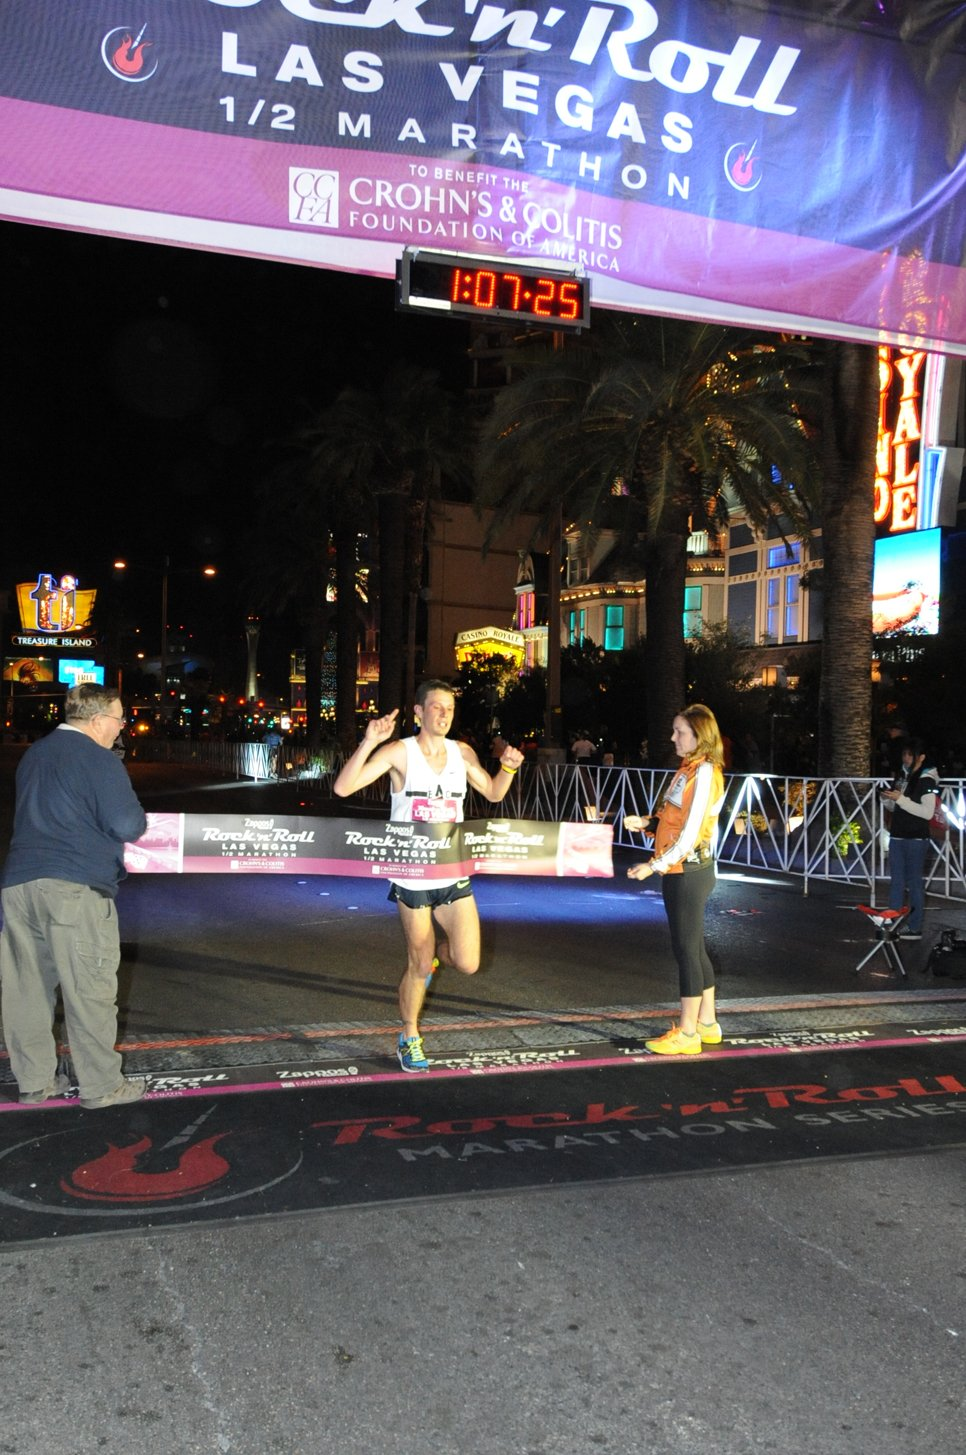 Craig Hopkins of England was the men's champion in the half-marathon with a time of 1:07:23 (Courtesy: LVCVA)